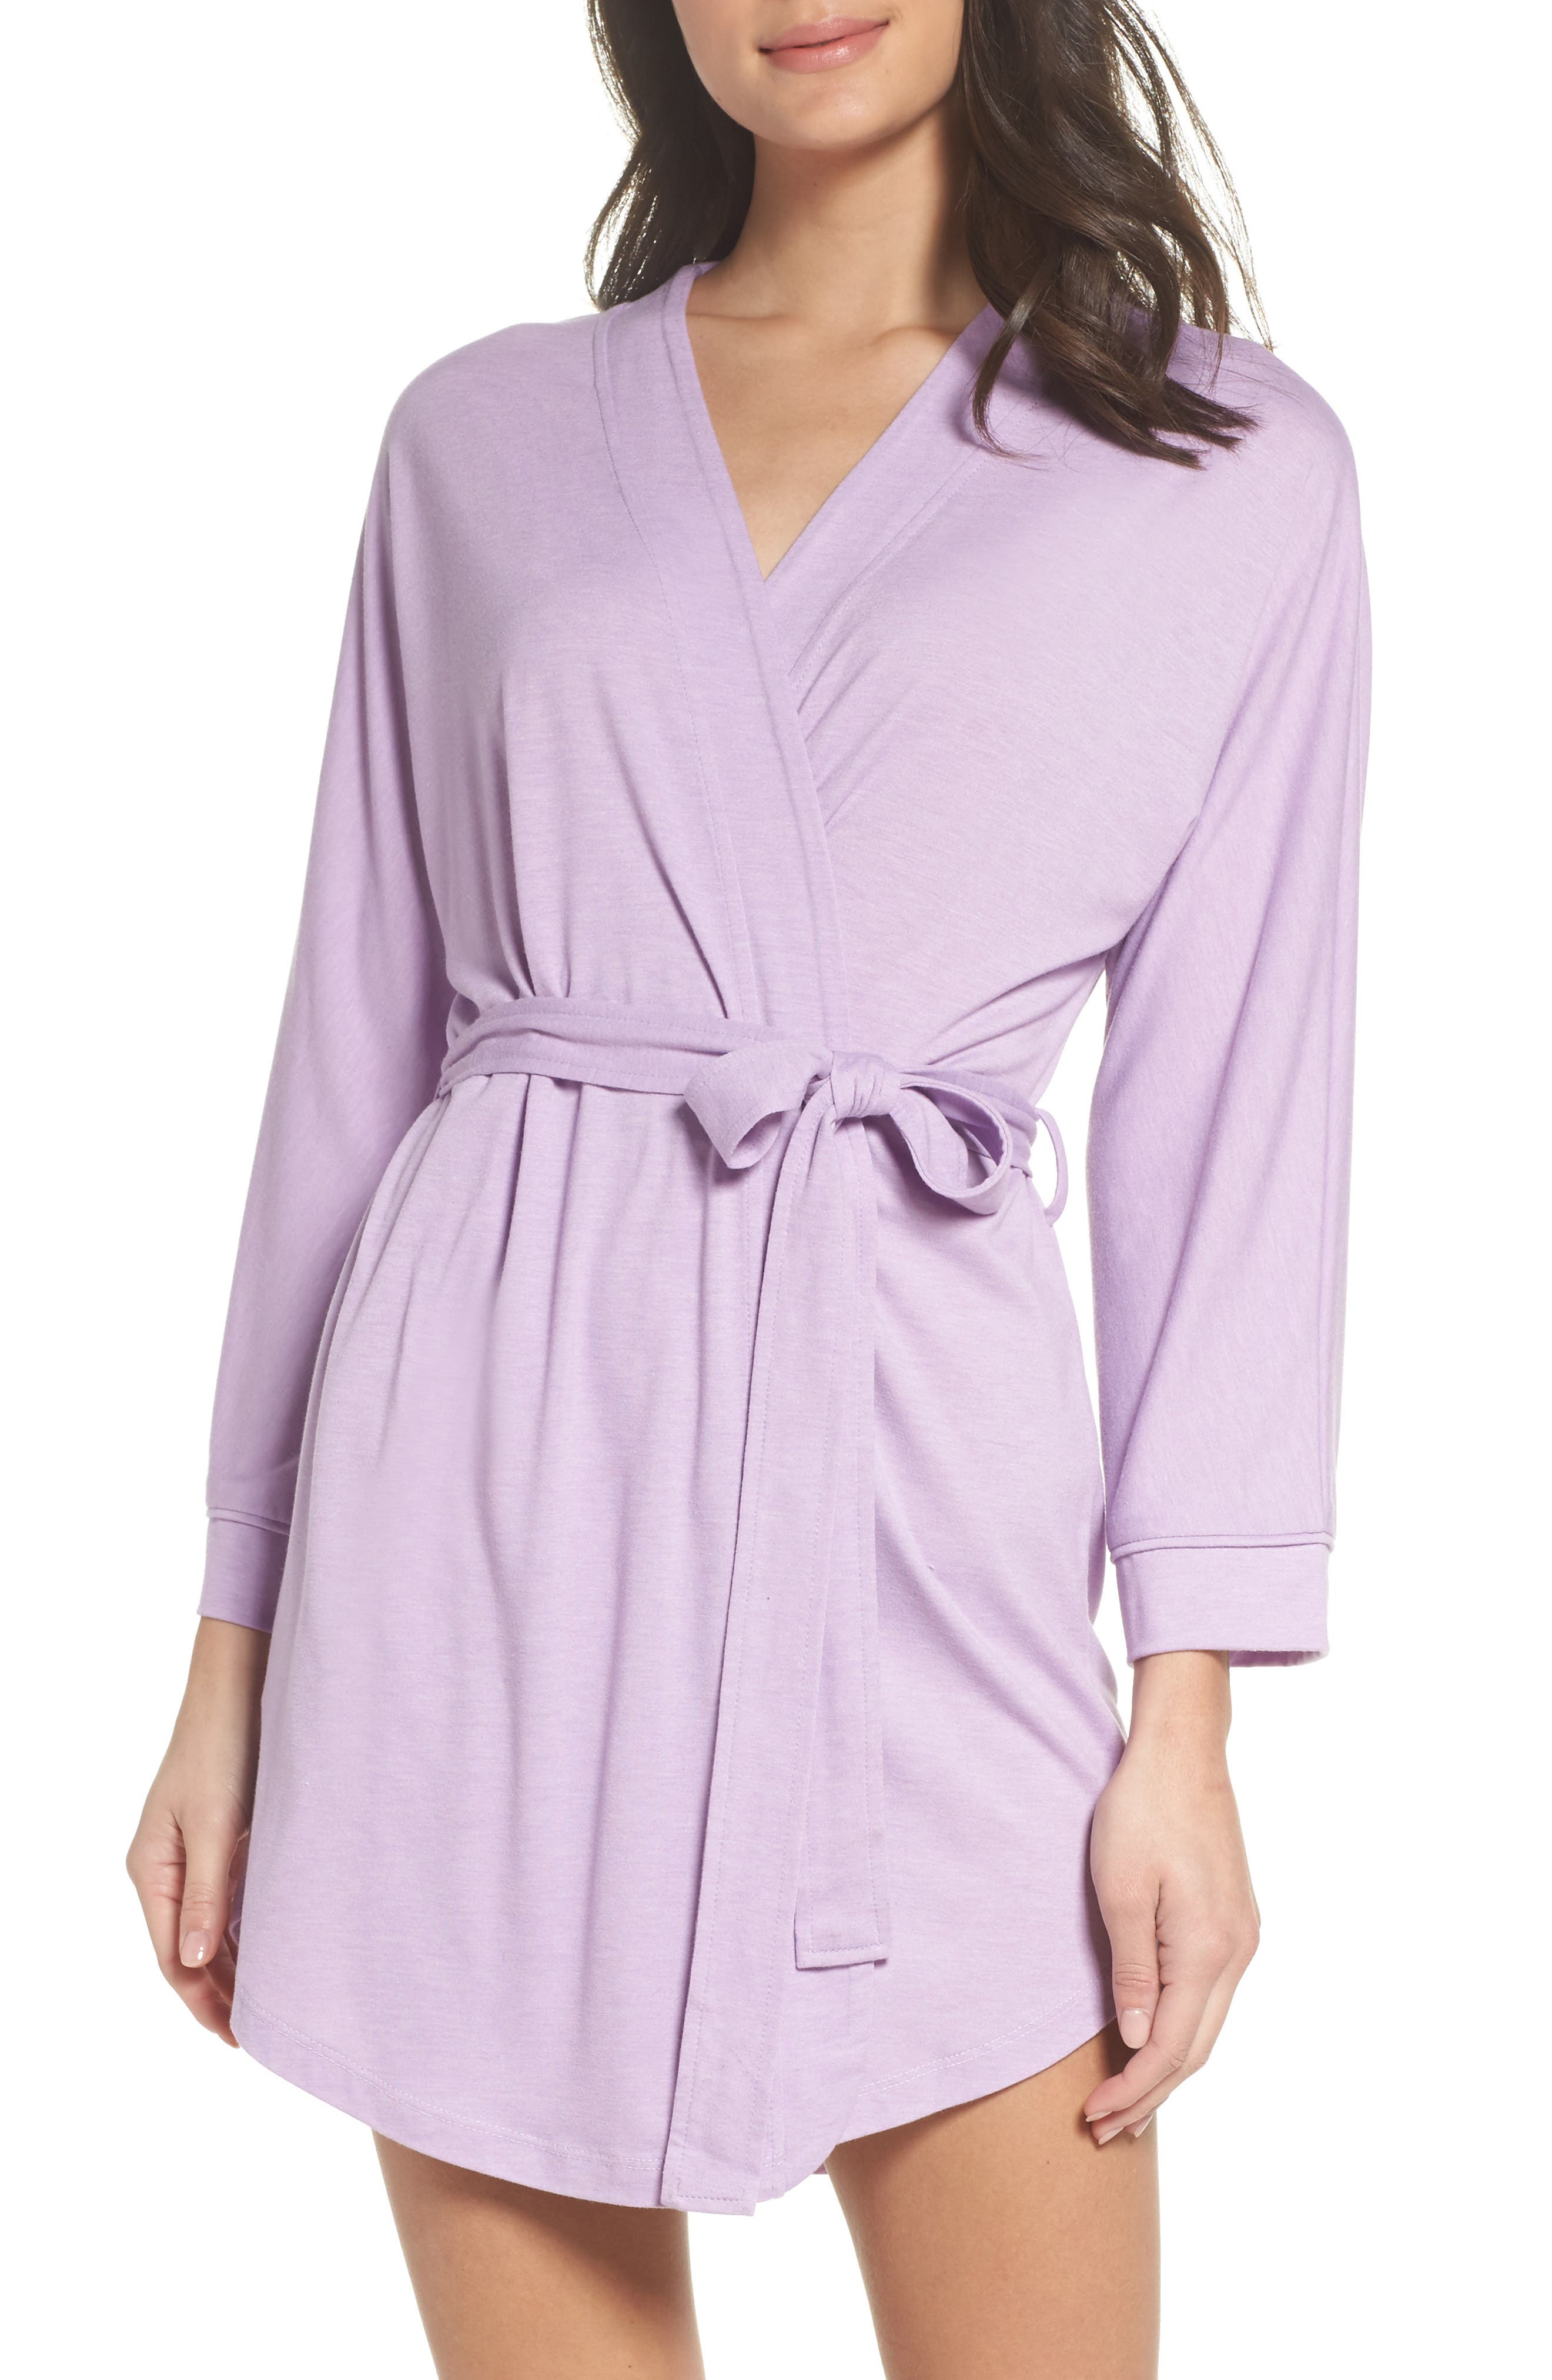 Main Image - Honeydew Intimates All American Jersey Robe (2 for $60)